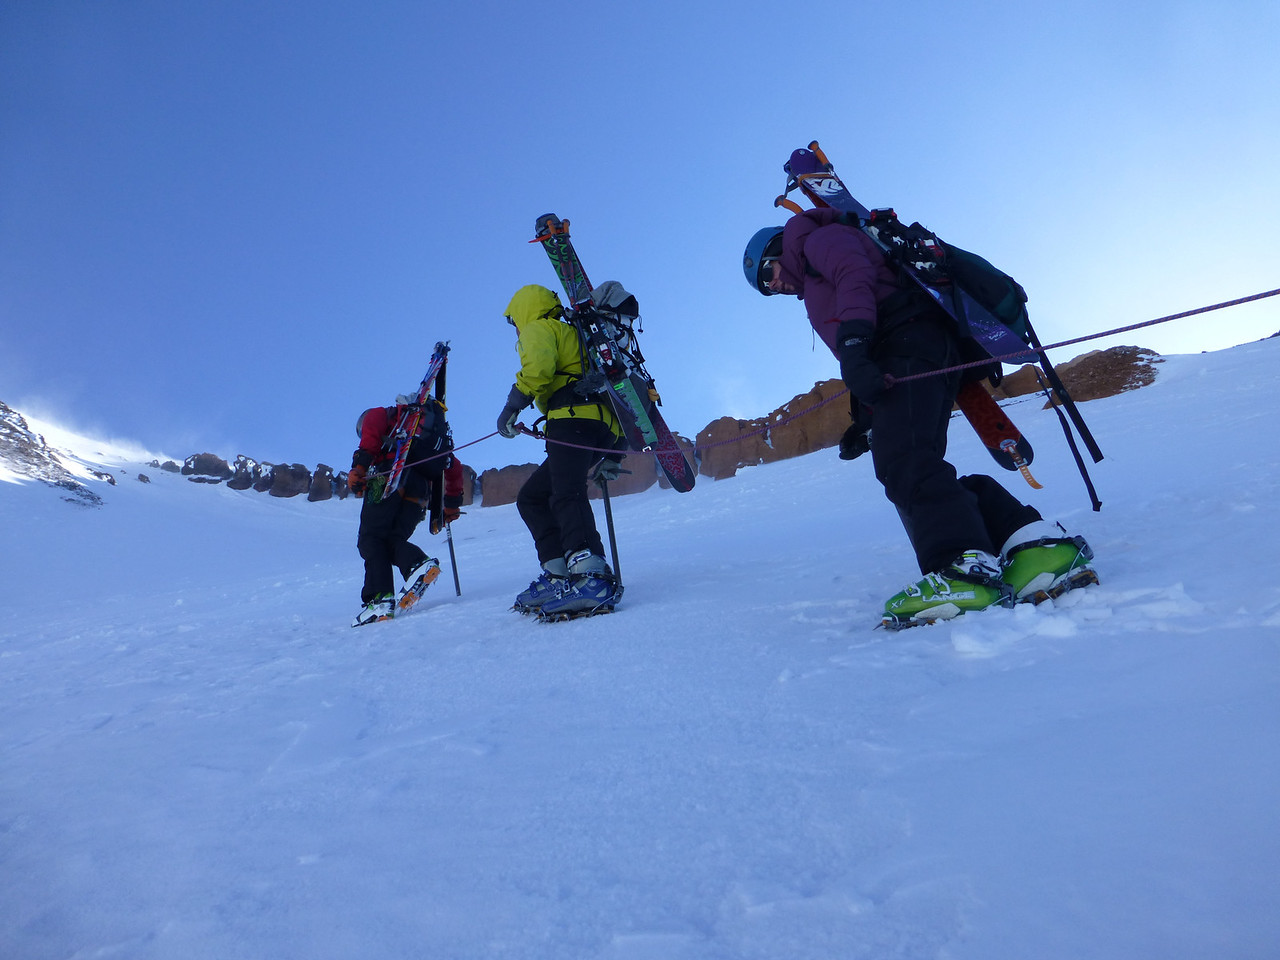 Tucker continues to lead the team up Avalanche Gulch, left of heart, towards the top of the Red Banks.